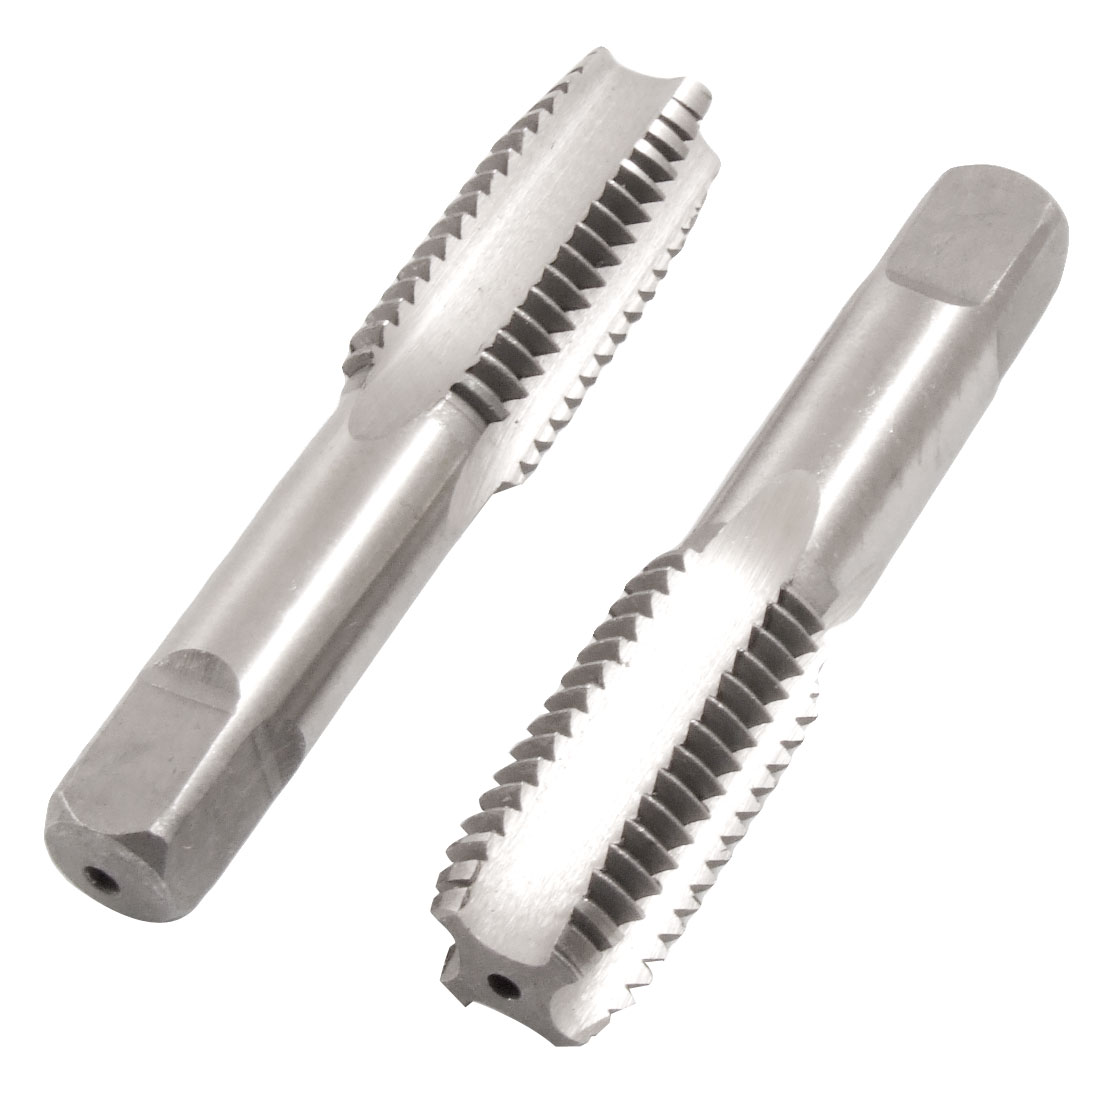 2 x M18 18mm High Speed Steel HSS Hand Screw Thread Metric Plug Taps